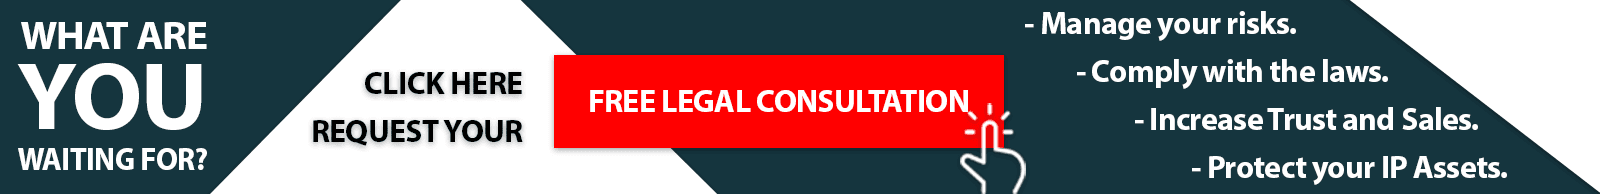 Receive a FREE Legal Consultation from one of our trusted advisors.